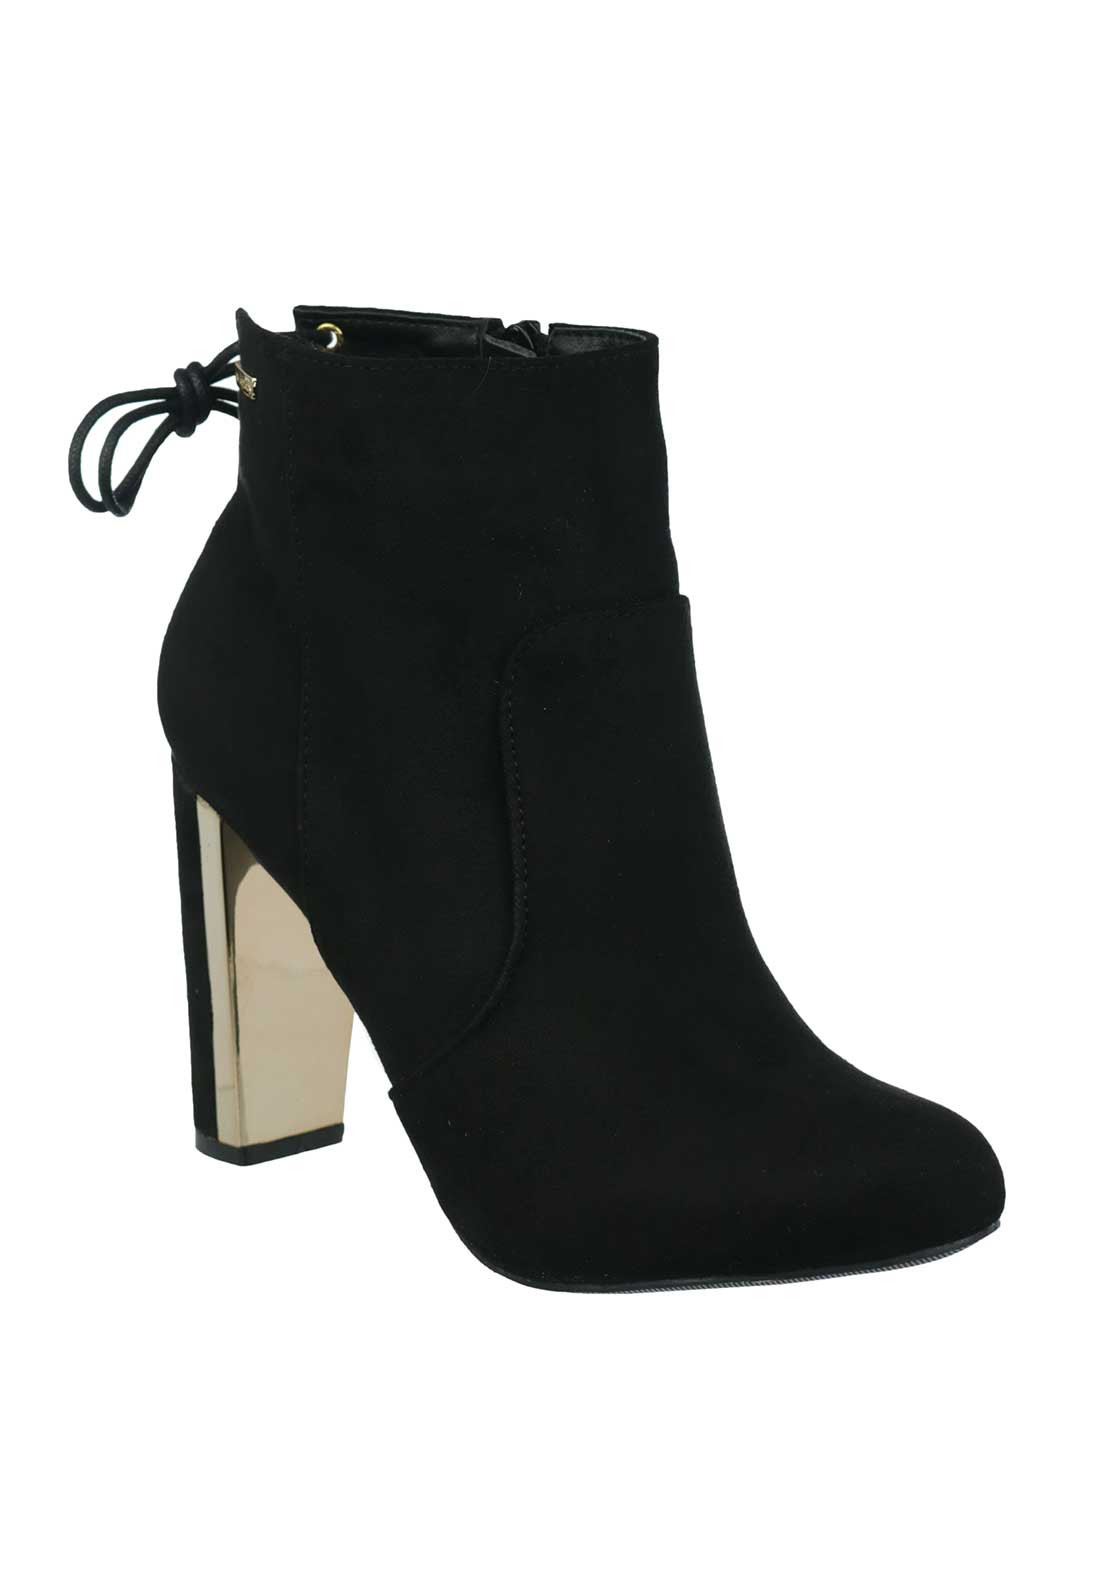 Kate Appleby Boden Way Suede Ankle Boots, Black